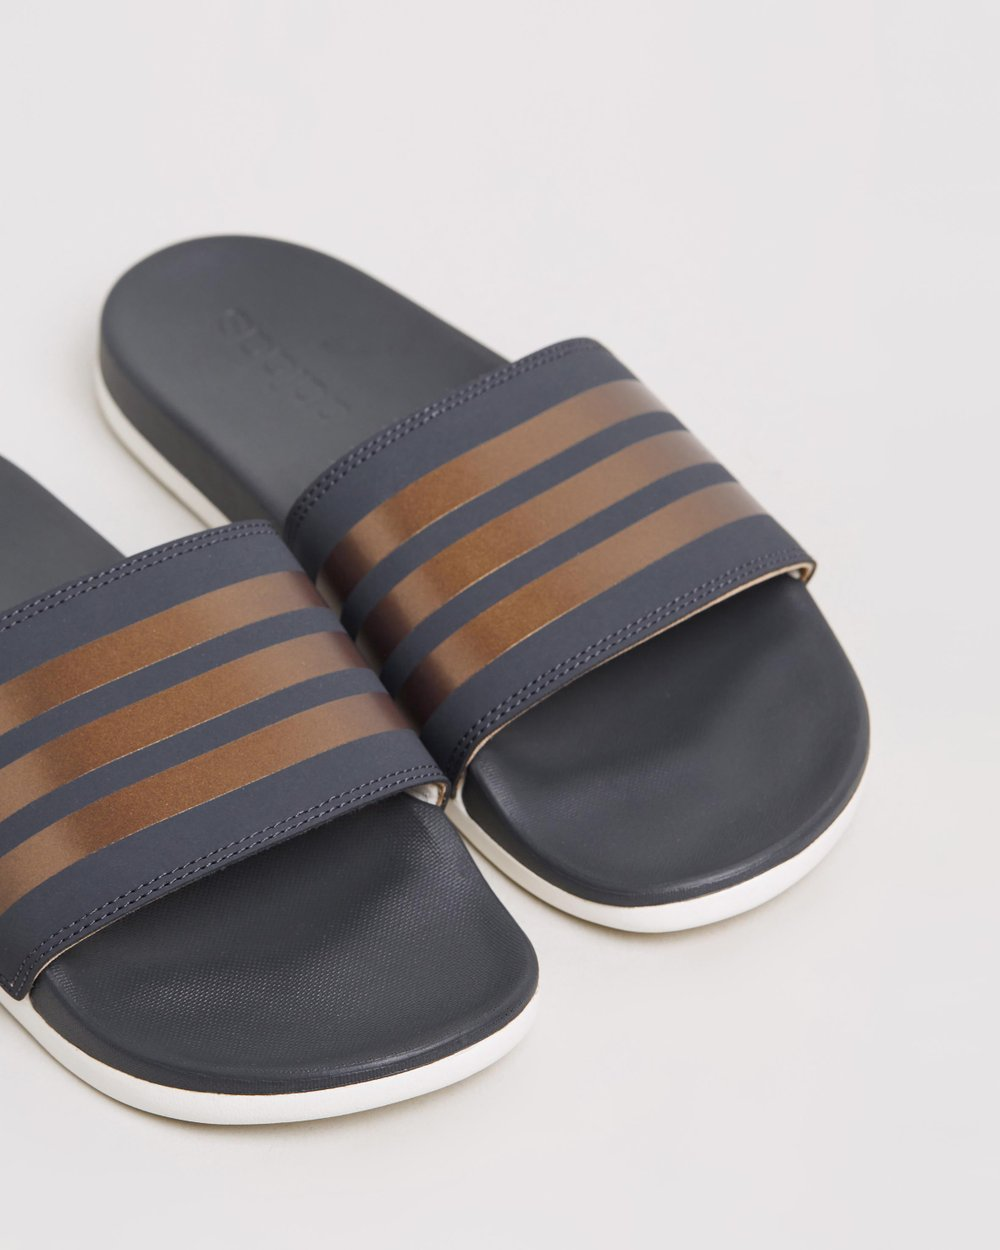 bde9237de Adilette Comfort Slides - Women s by adidas Performance Online